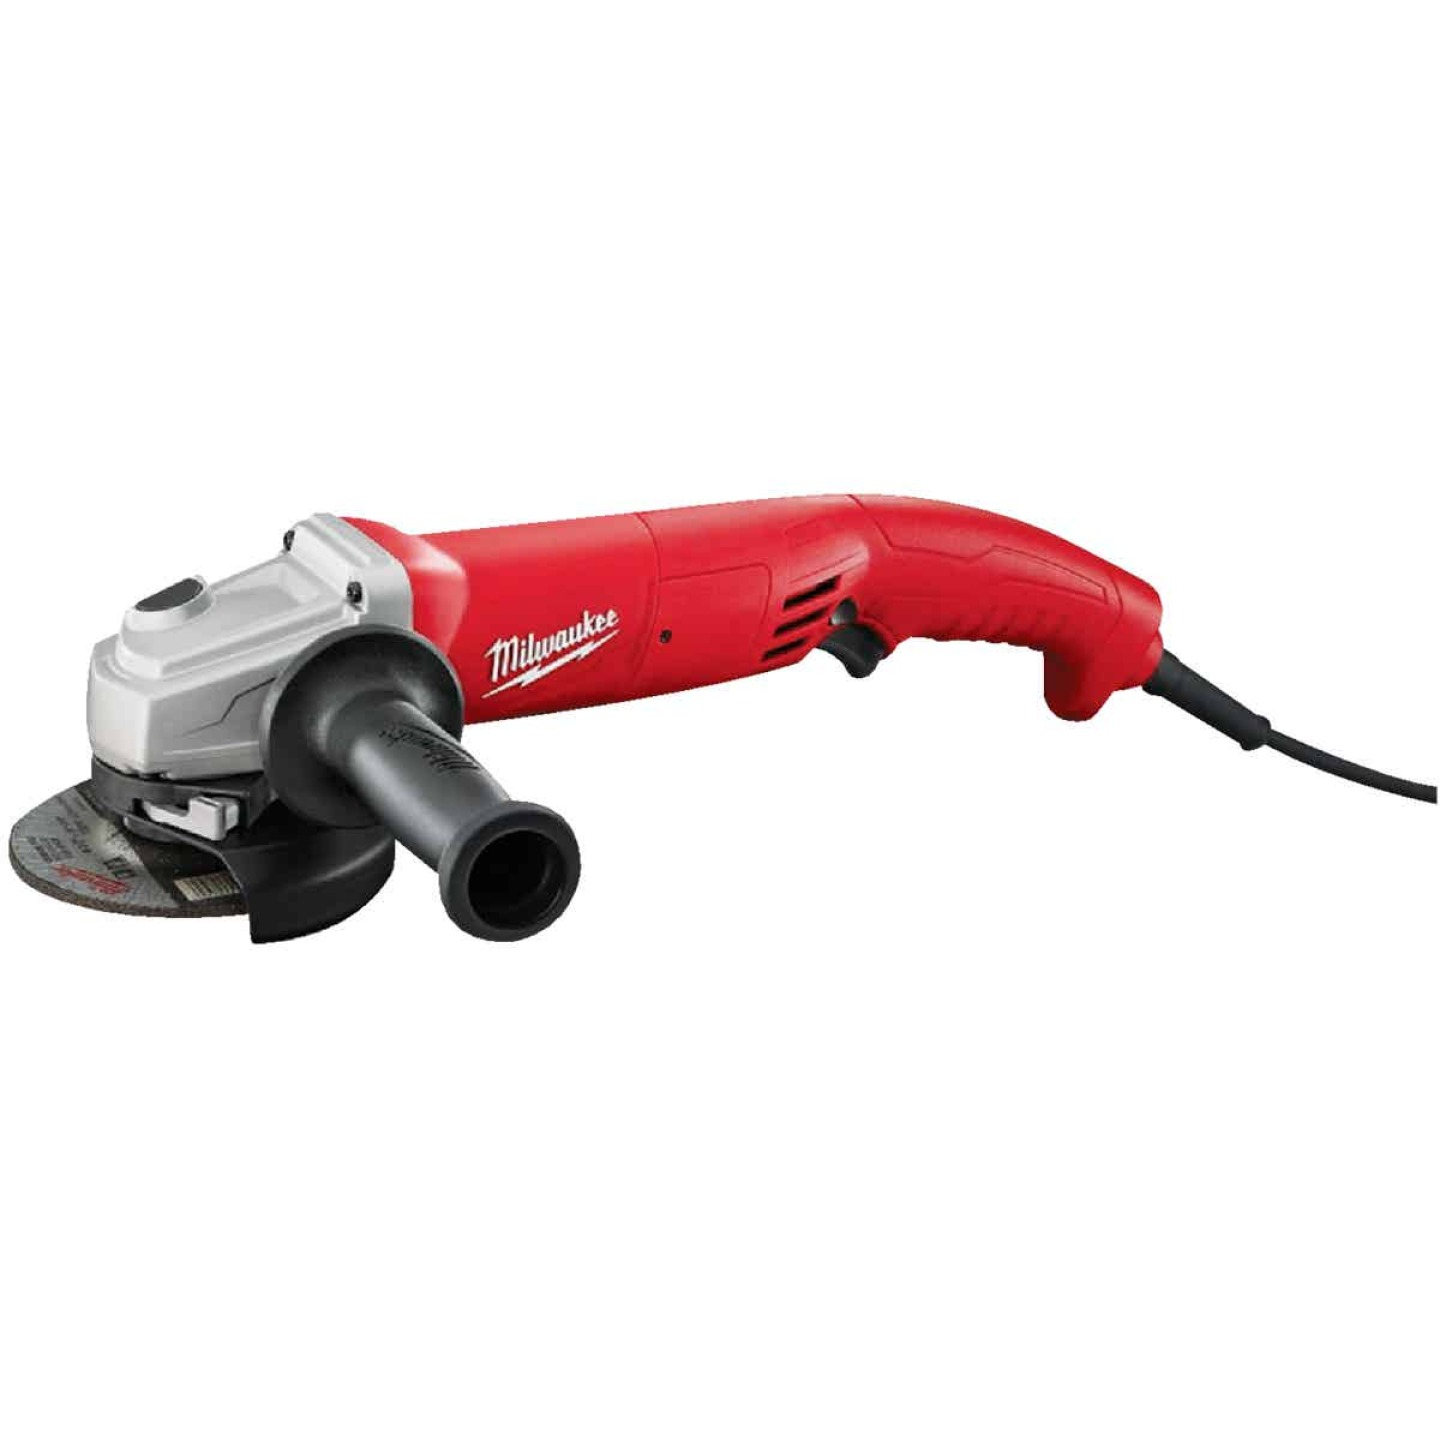 Milwaukee 4-1/2 In. 11A 11,000 rpm Angle Grinder Image 1